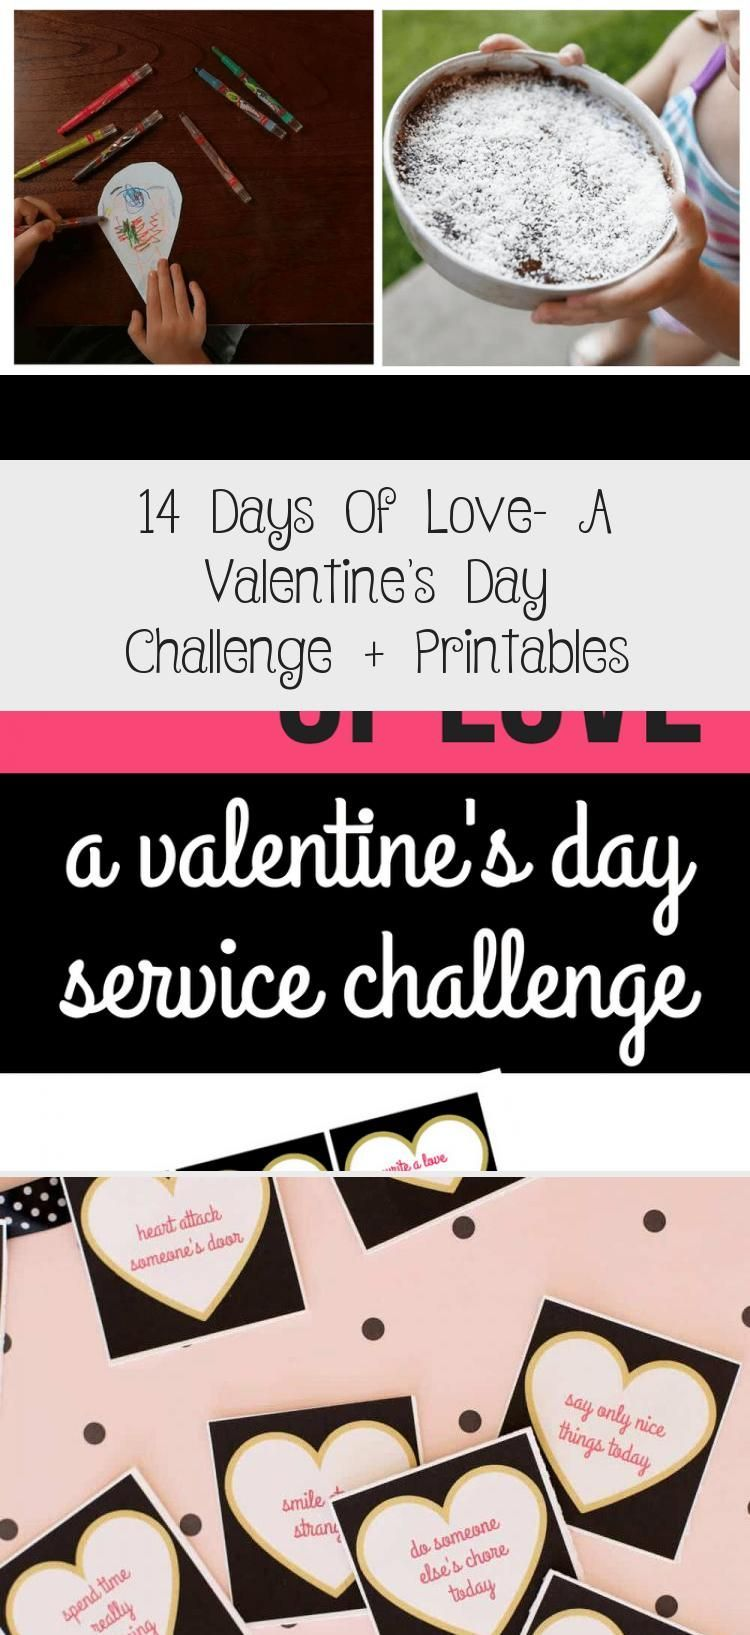 14 Days of Love Valentines Day Service Challenge Many people imagine that fashionable and classy garments really helps to flatter the appears We reside in a Culture in wh...